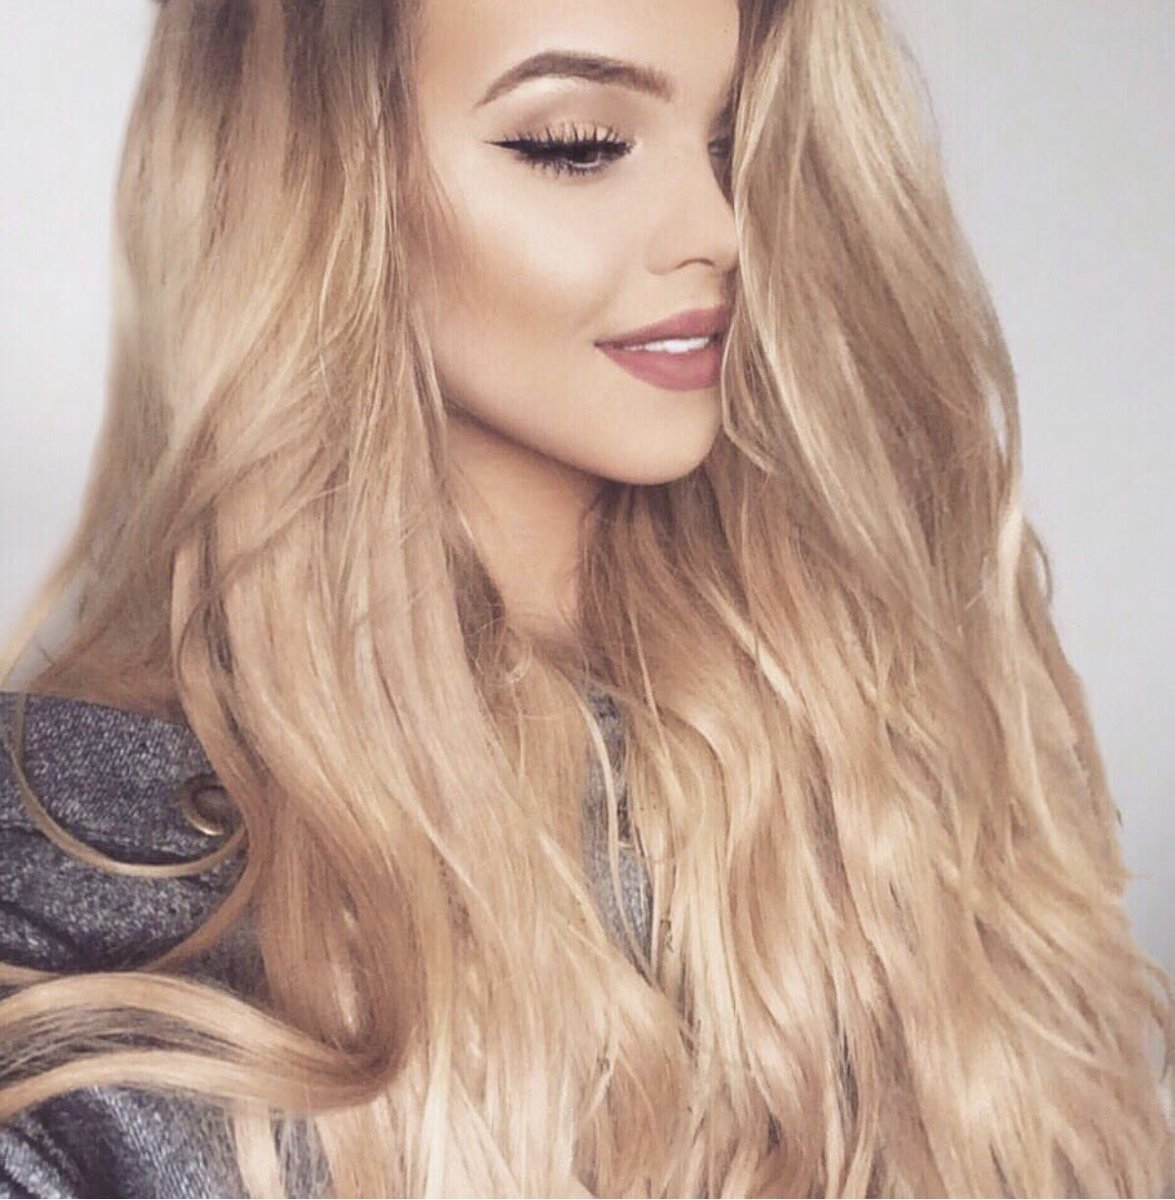 Bellami Hair On Twitter Chloalawrence Is Looking Gorgeous In